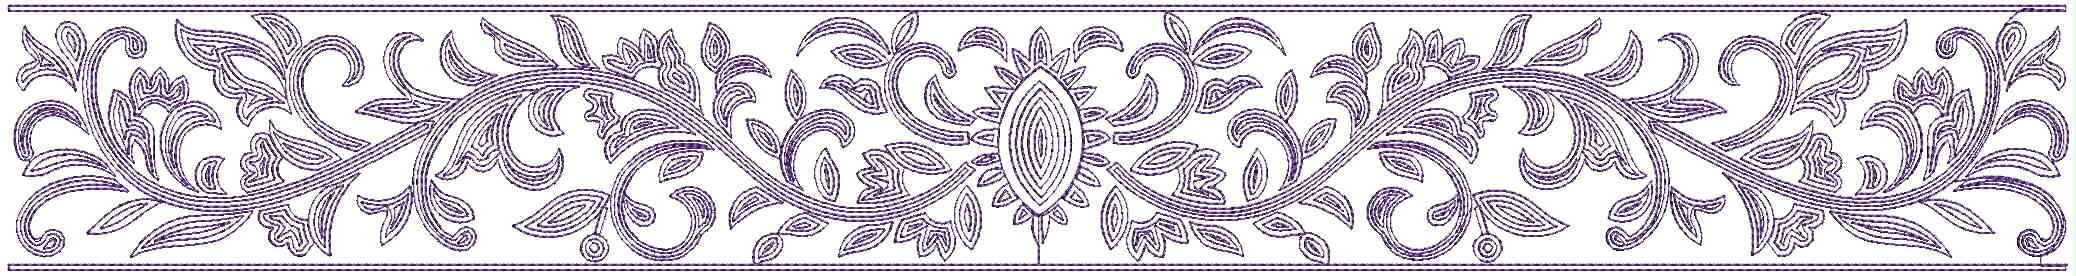 beautiful climber lace/border embroidery designs